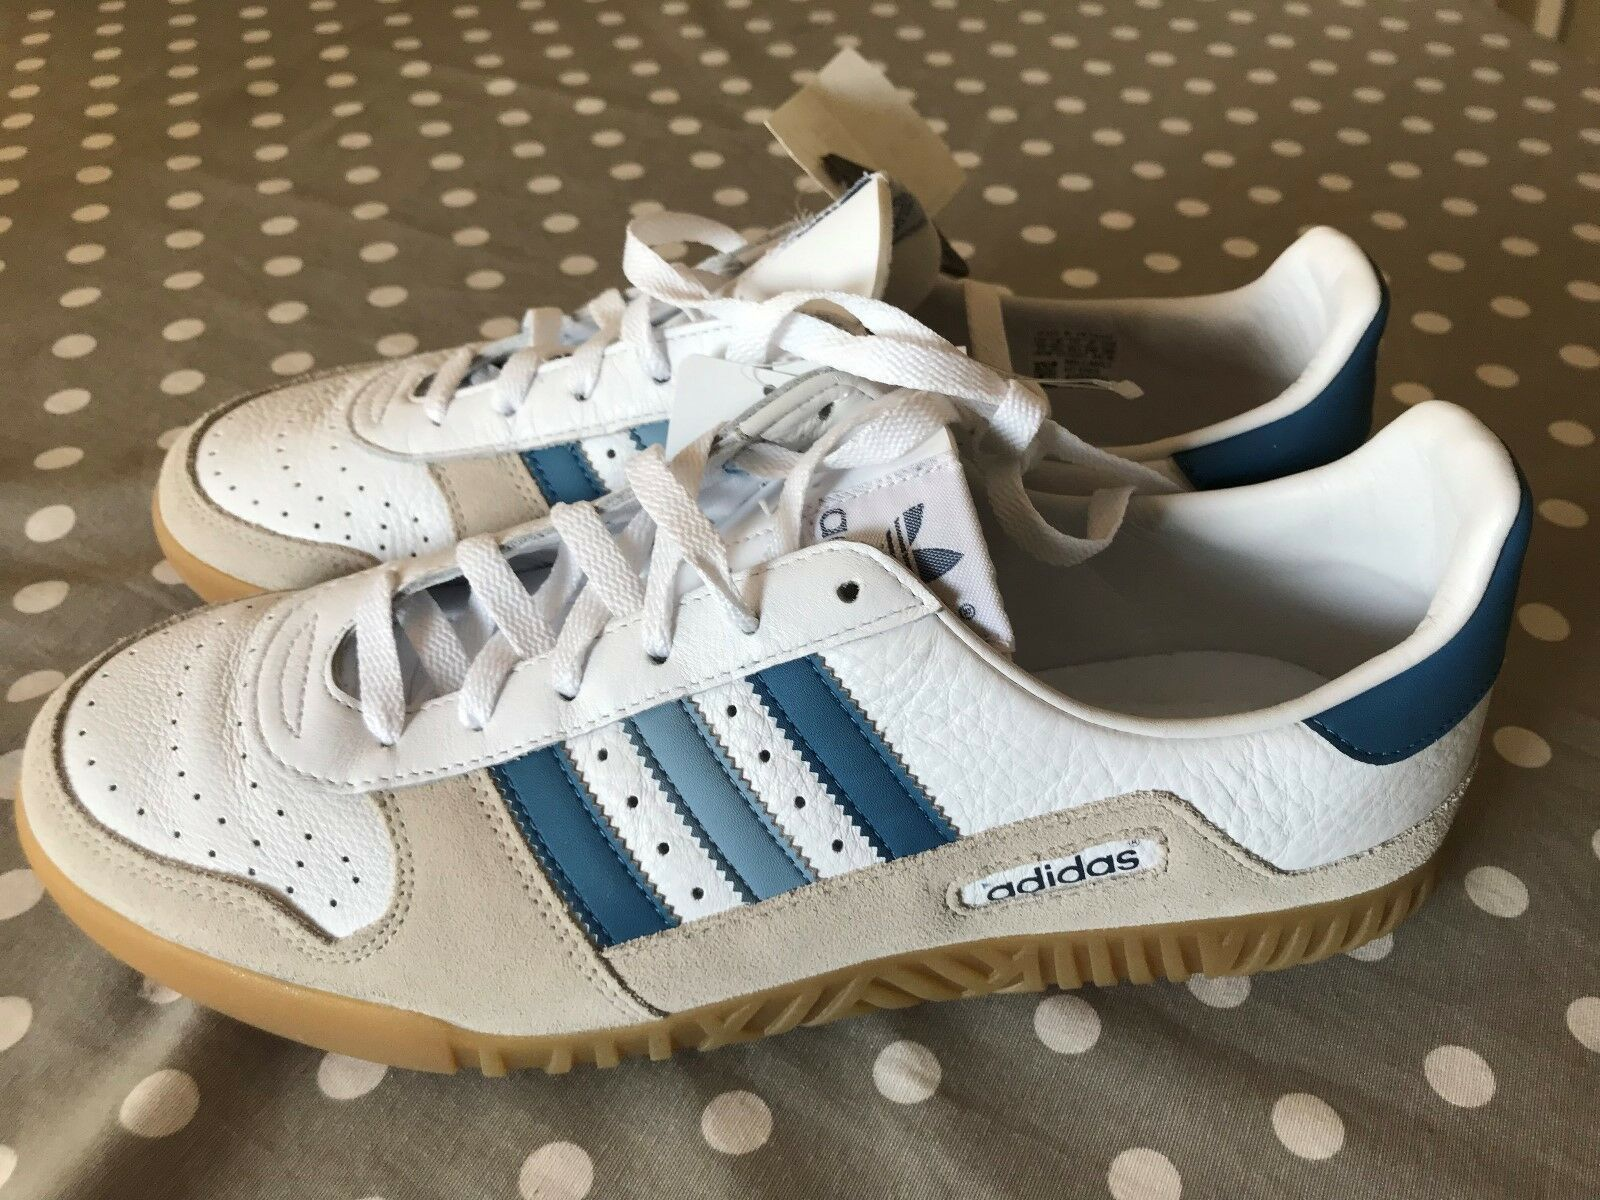 shoes ADIDAS X SPEZIAL - NR 45 1 3 - NUOVE - B41820 - OFFERTA SPECIALE